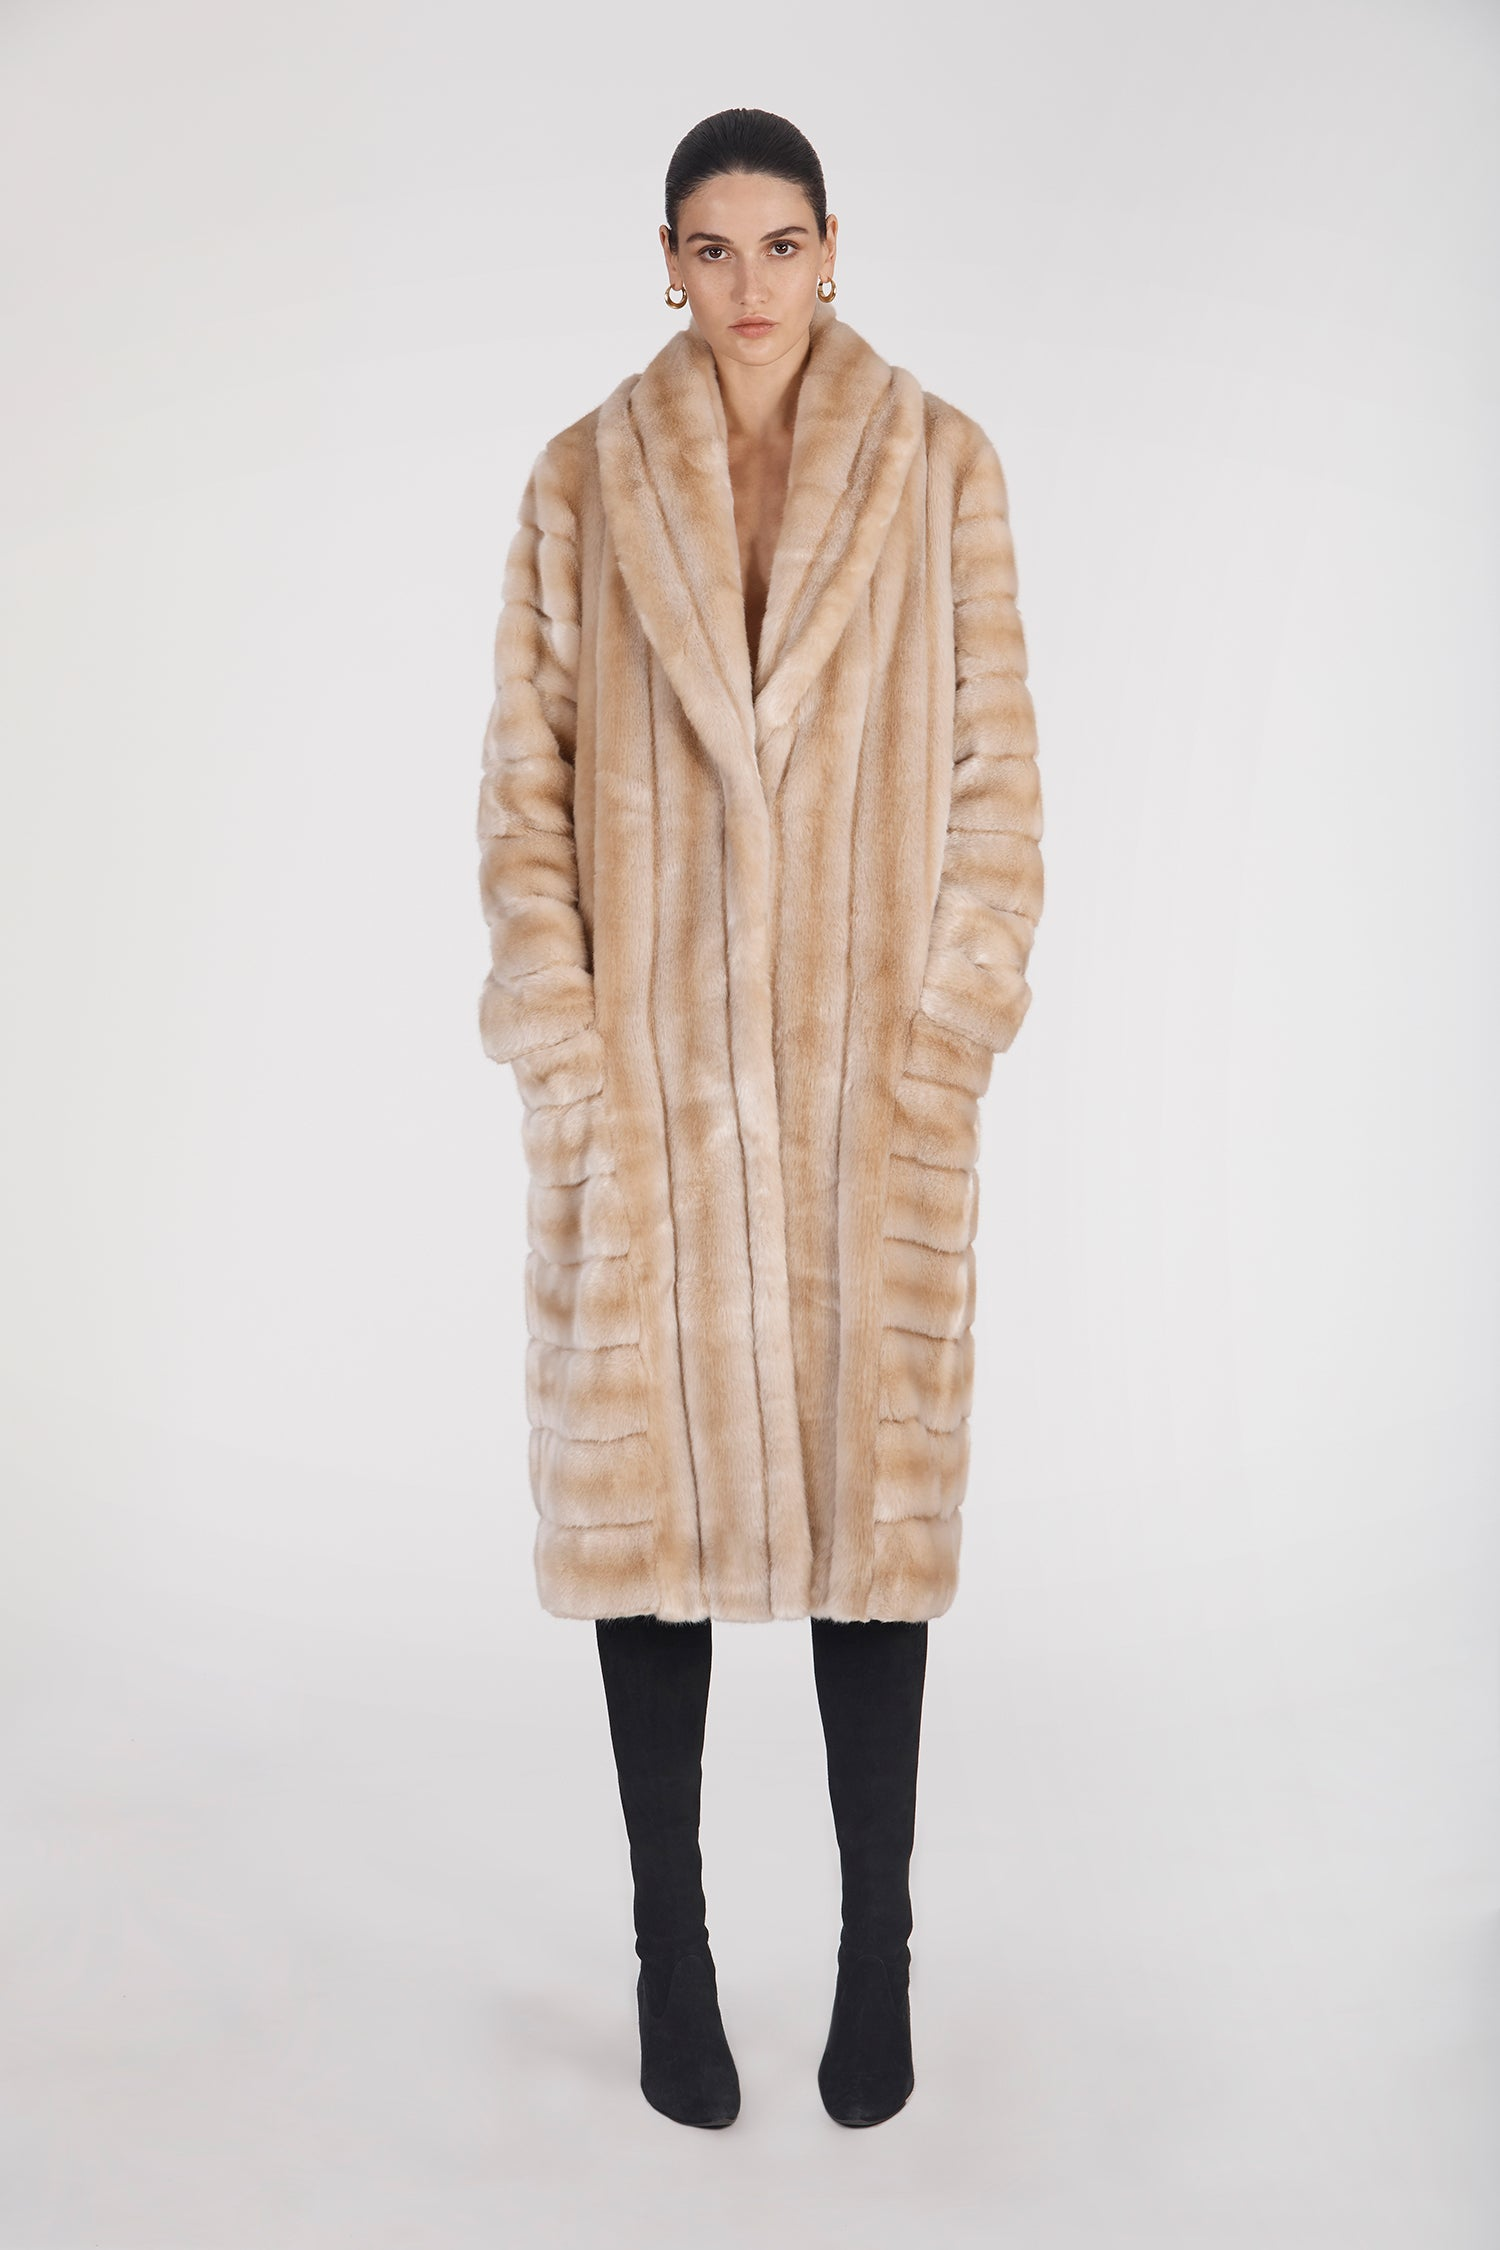 Marei1998's Timeless Echinacea Long Faux Fur Coat In The Classiest Natural/Beige Color. Featuring Calf Length, Oversized Silhouette And Wide Shawl Neckline. Investment Piece / Winter Essential. As Worn By The Model. Front View. Resort 2020 Collection - Furless Friendship.